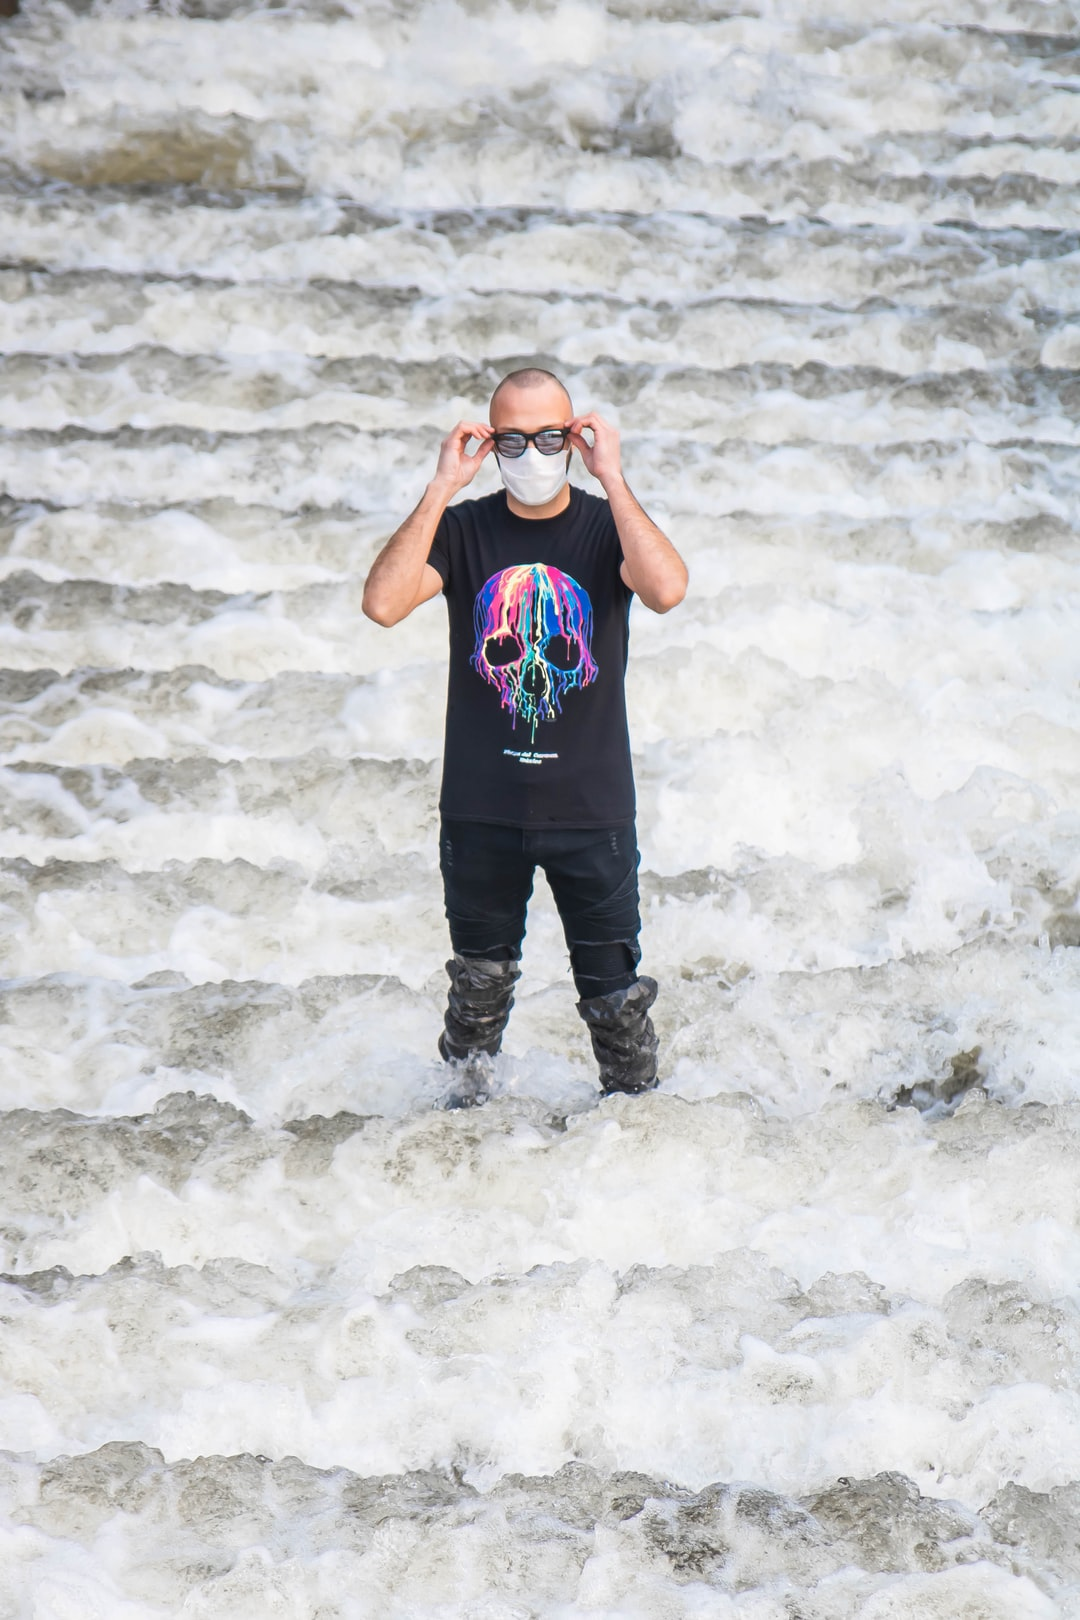 A man in glasses and a mask stands in the water